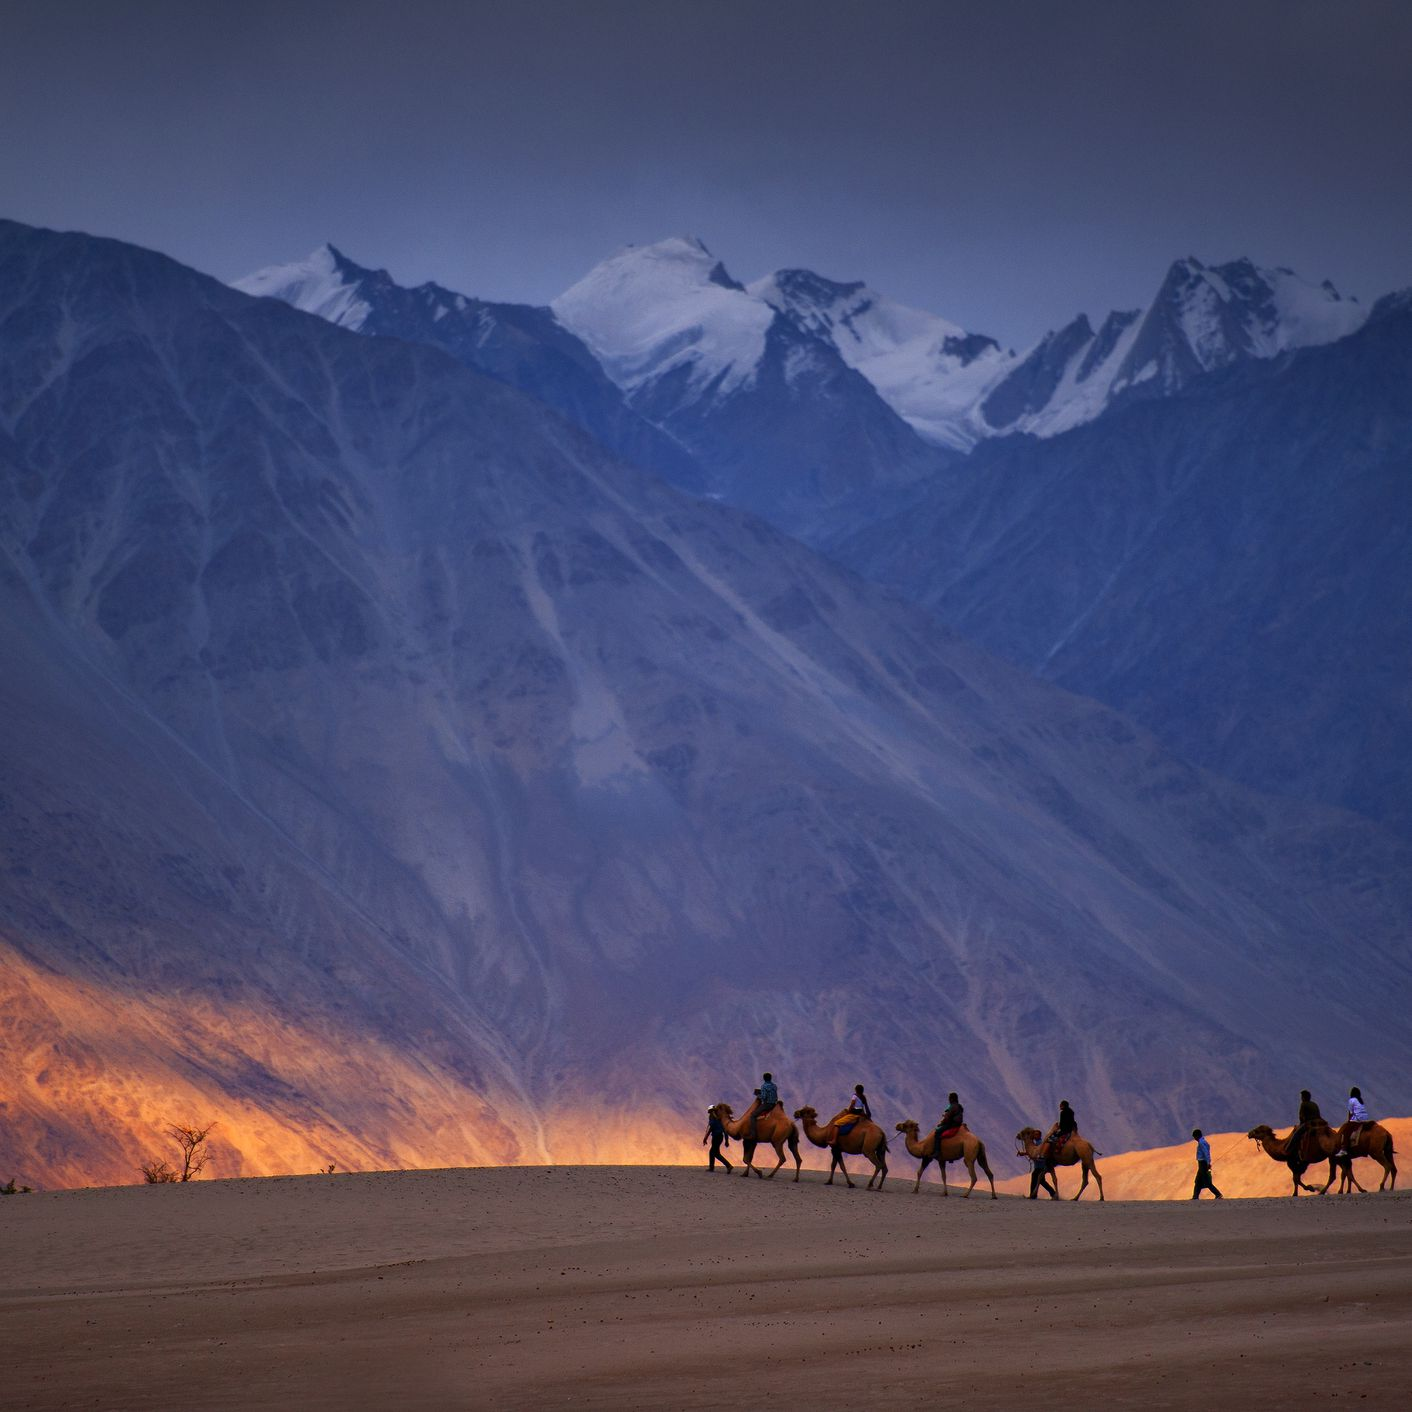 Ladakh's Nubra Valley: The Complete Guide